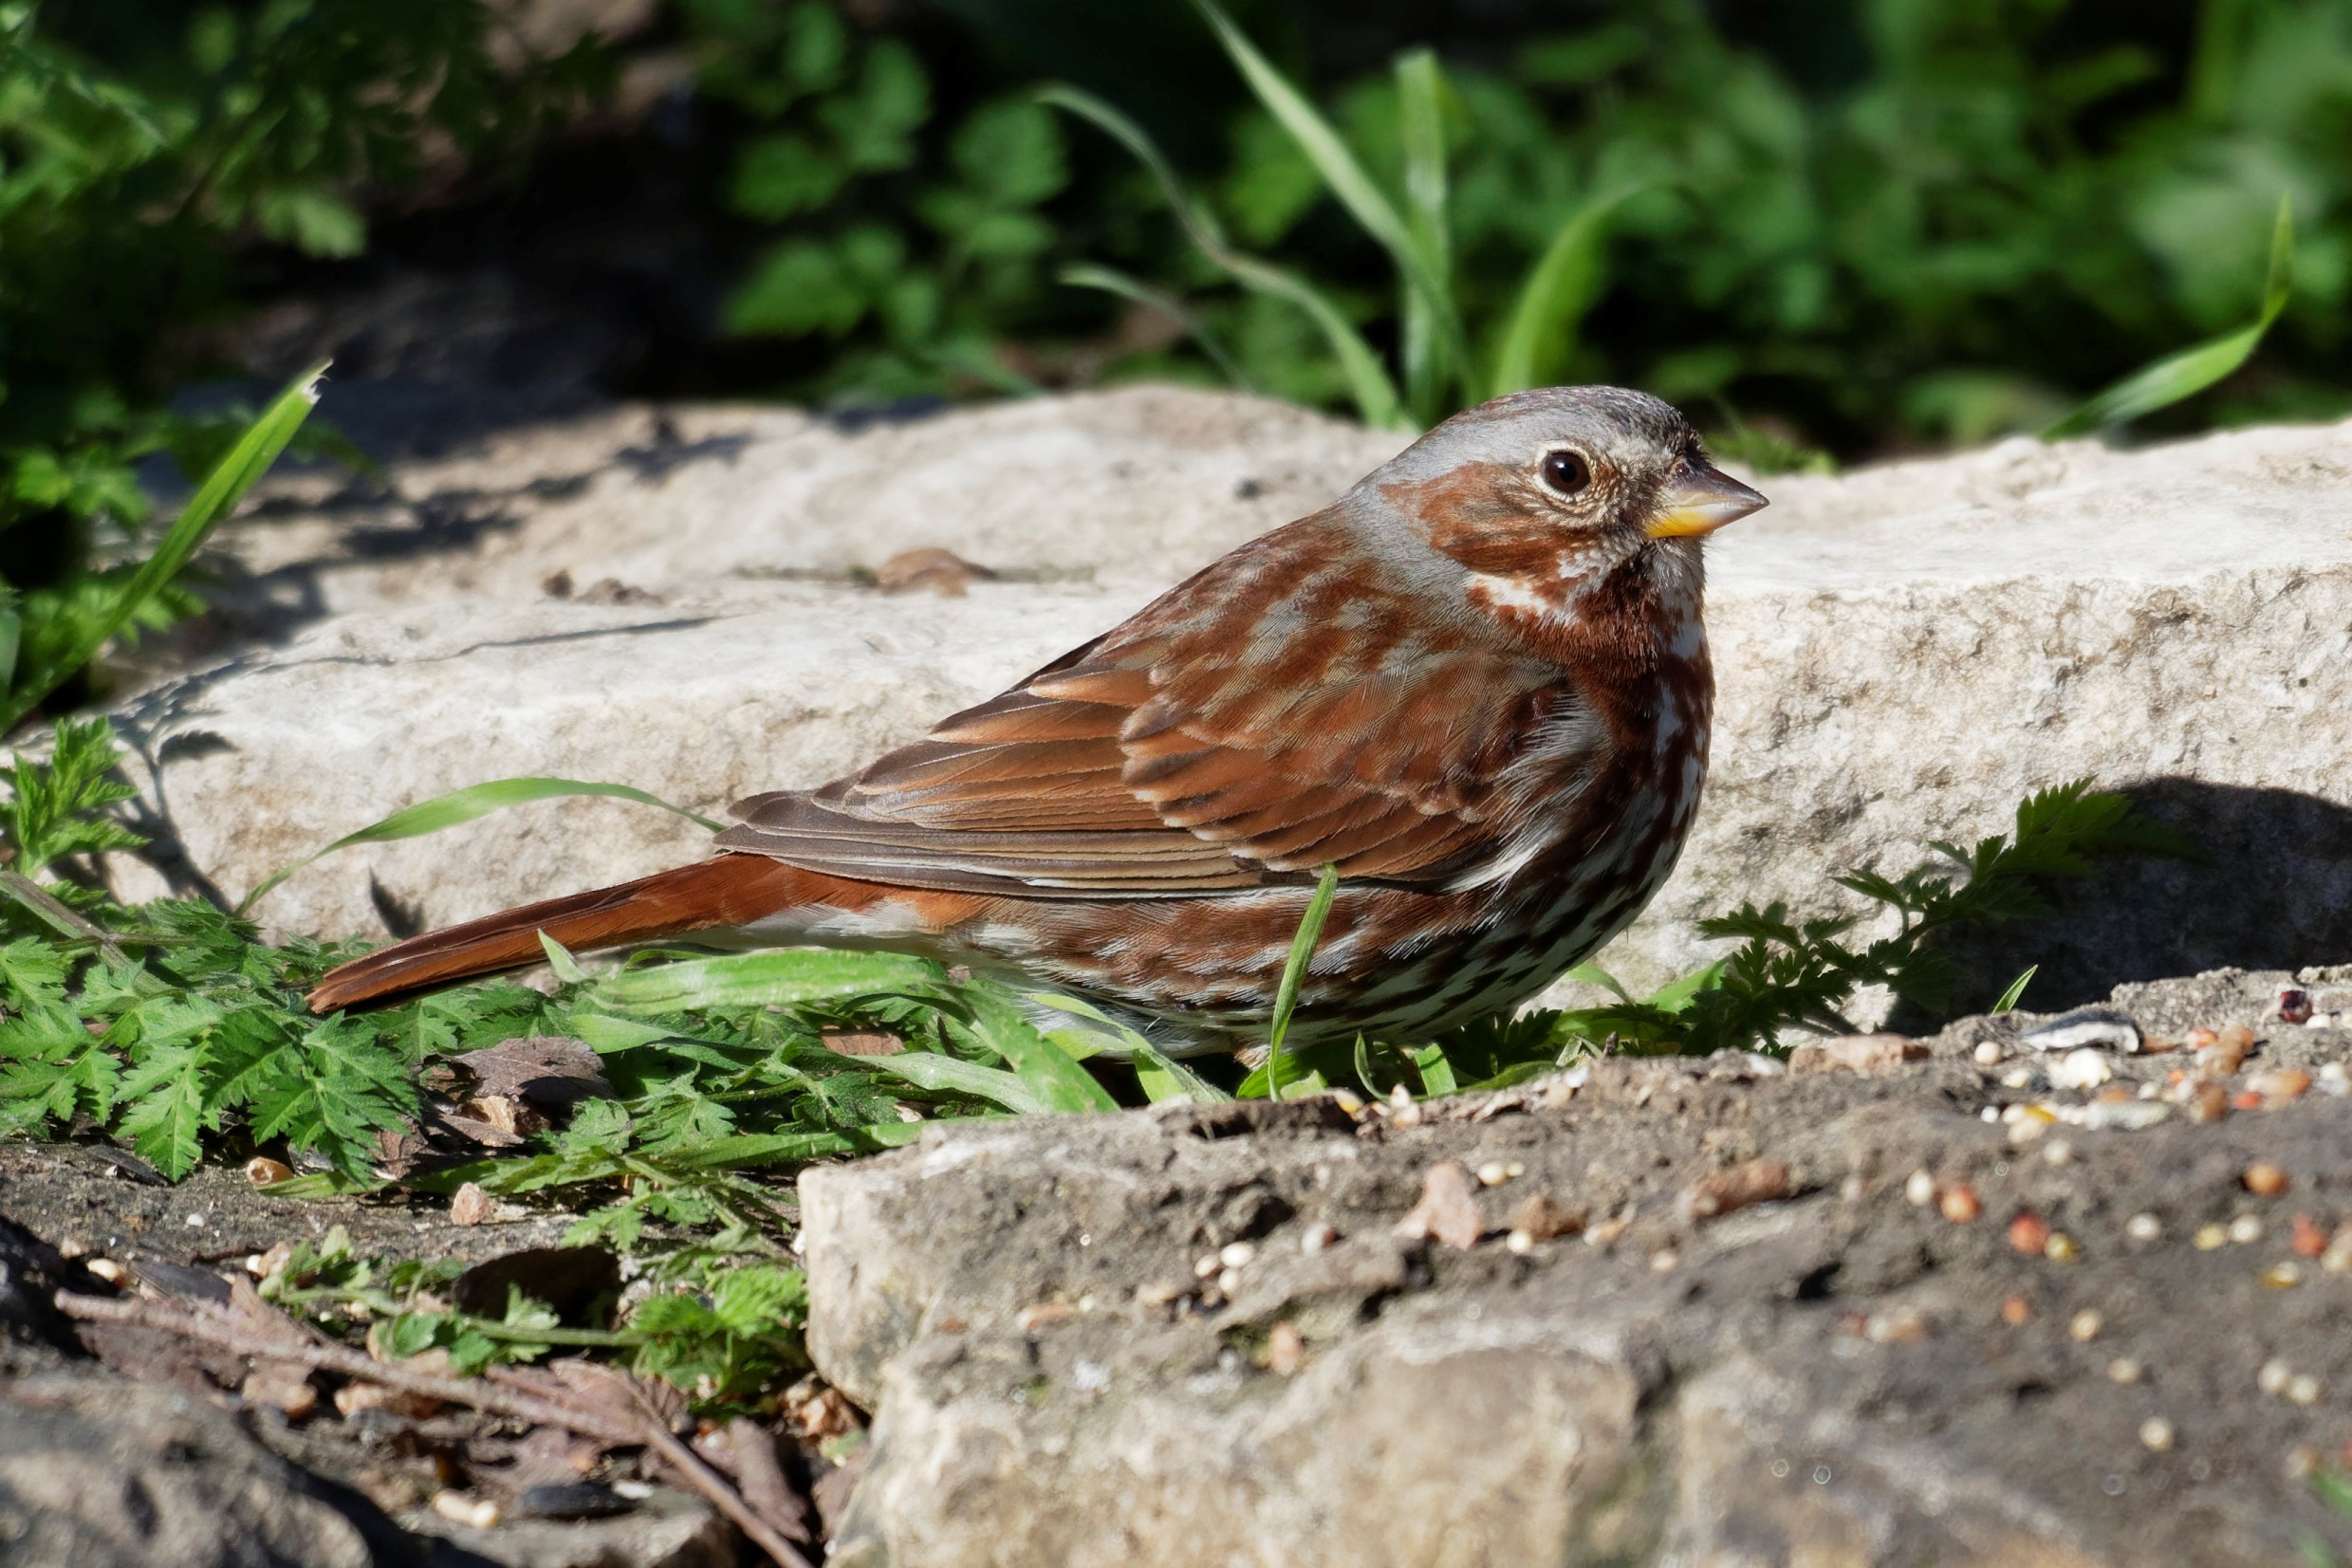 Species: Fox Sparrow Photo Credit: Dina Perry Date: February 2019 Location: Crescent Bend Nature Park